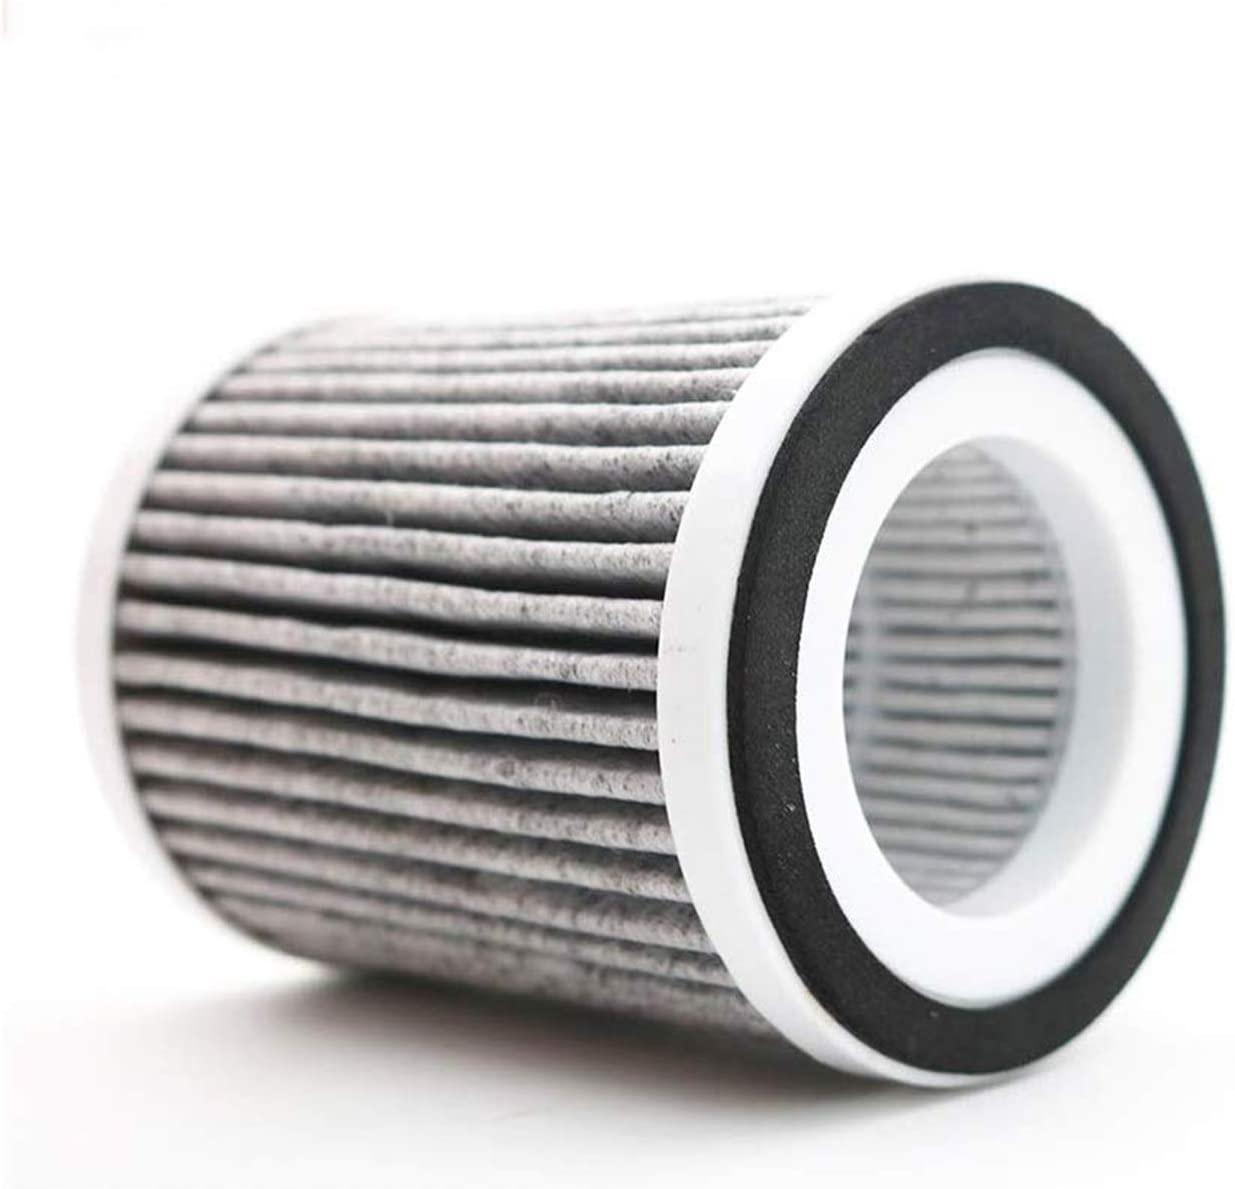 Jaywayne Filter Replacement Dedication Air for Filters Purifier At the price